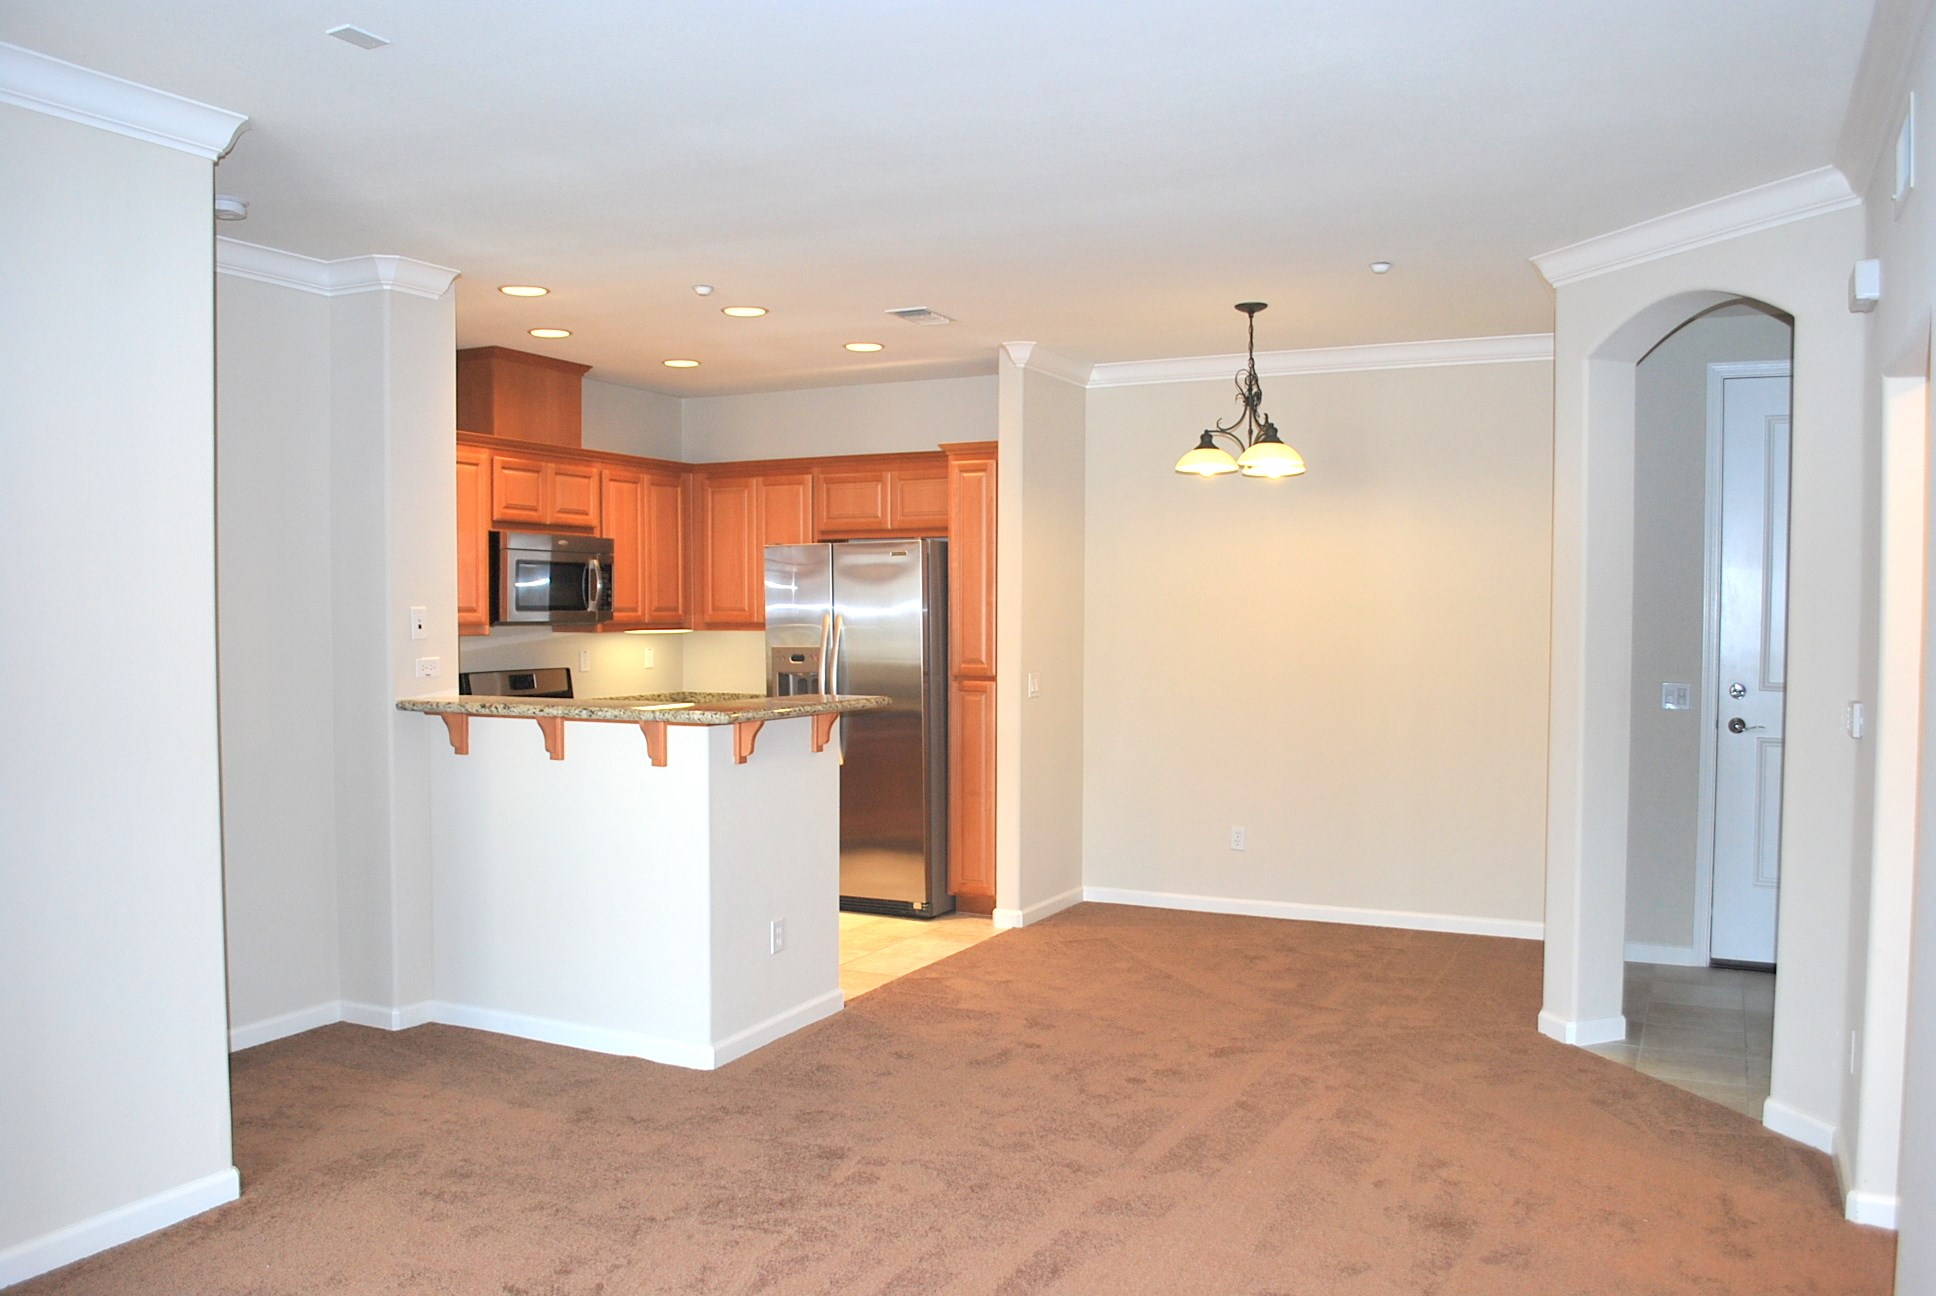 rooms for rent dublin ca – apartments house mercial space